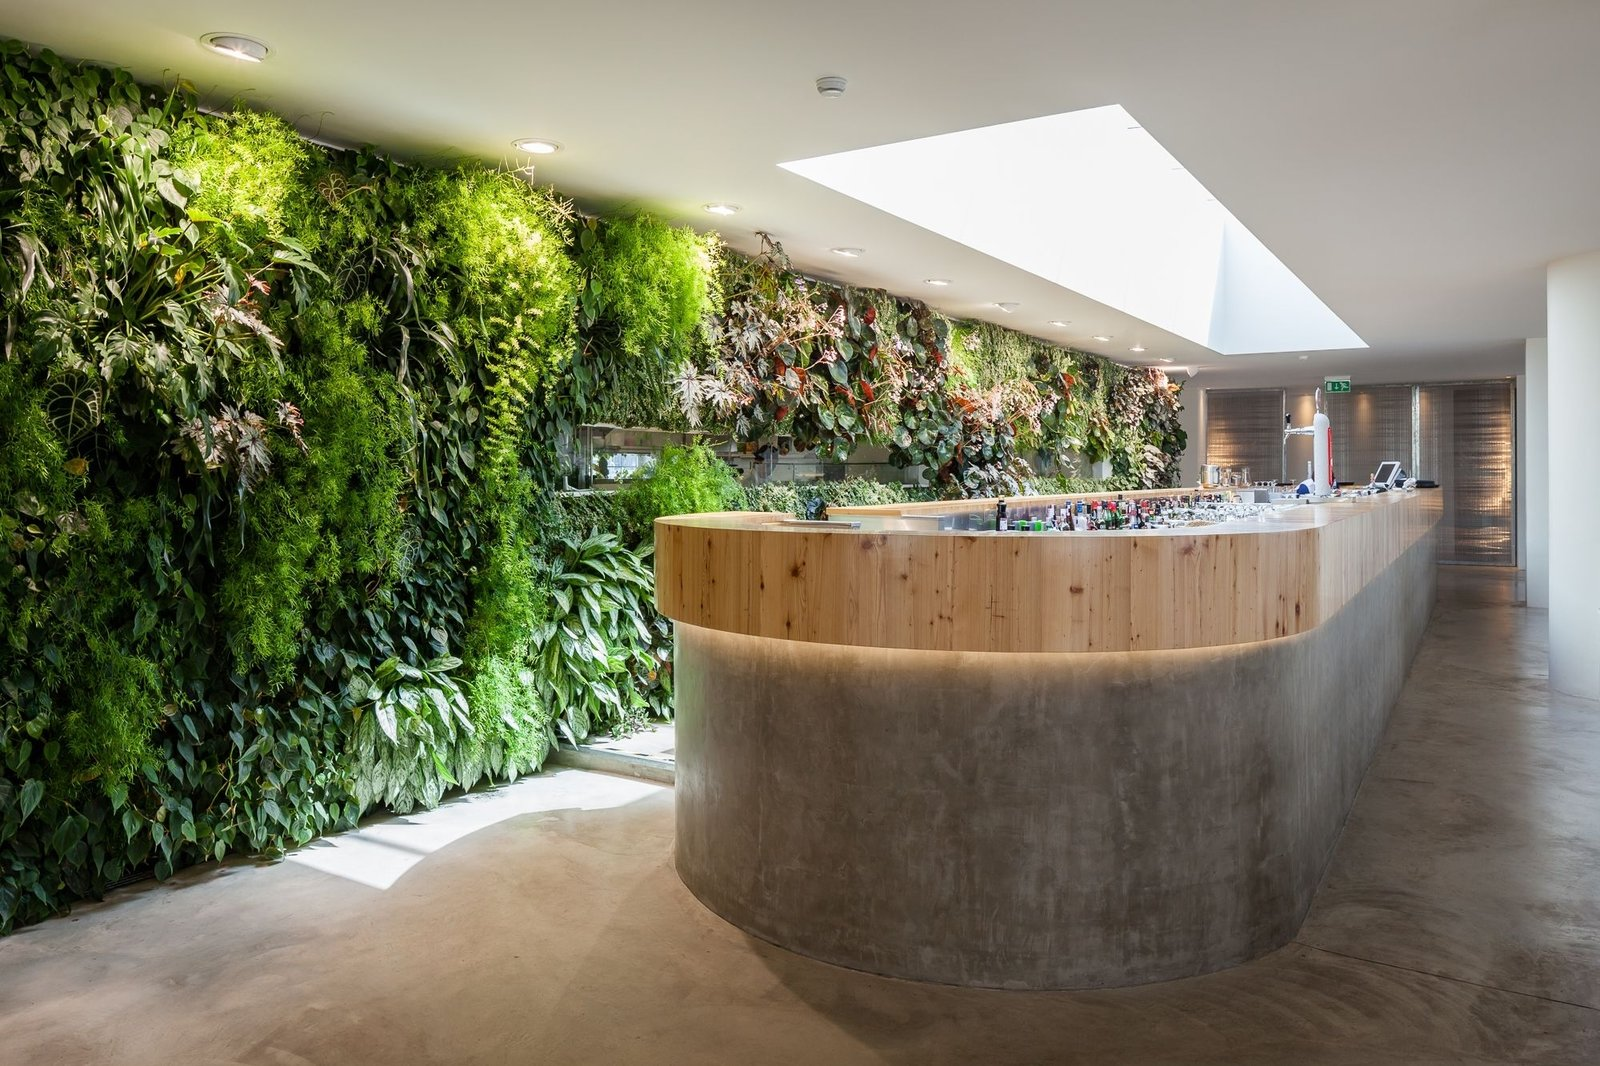 The Espaço Espelho d' Água – a restaurant, cafeteria and art gallery in Lisbon by Portugues architecture and design studio DC.AD has green walls in multiple green walls create by landscaping specialists Vertical Garden Design.